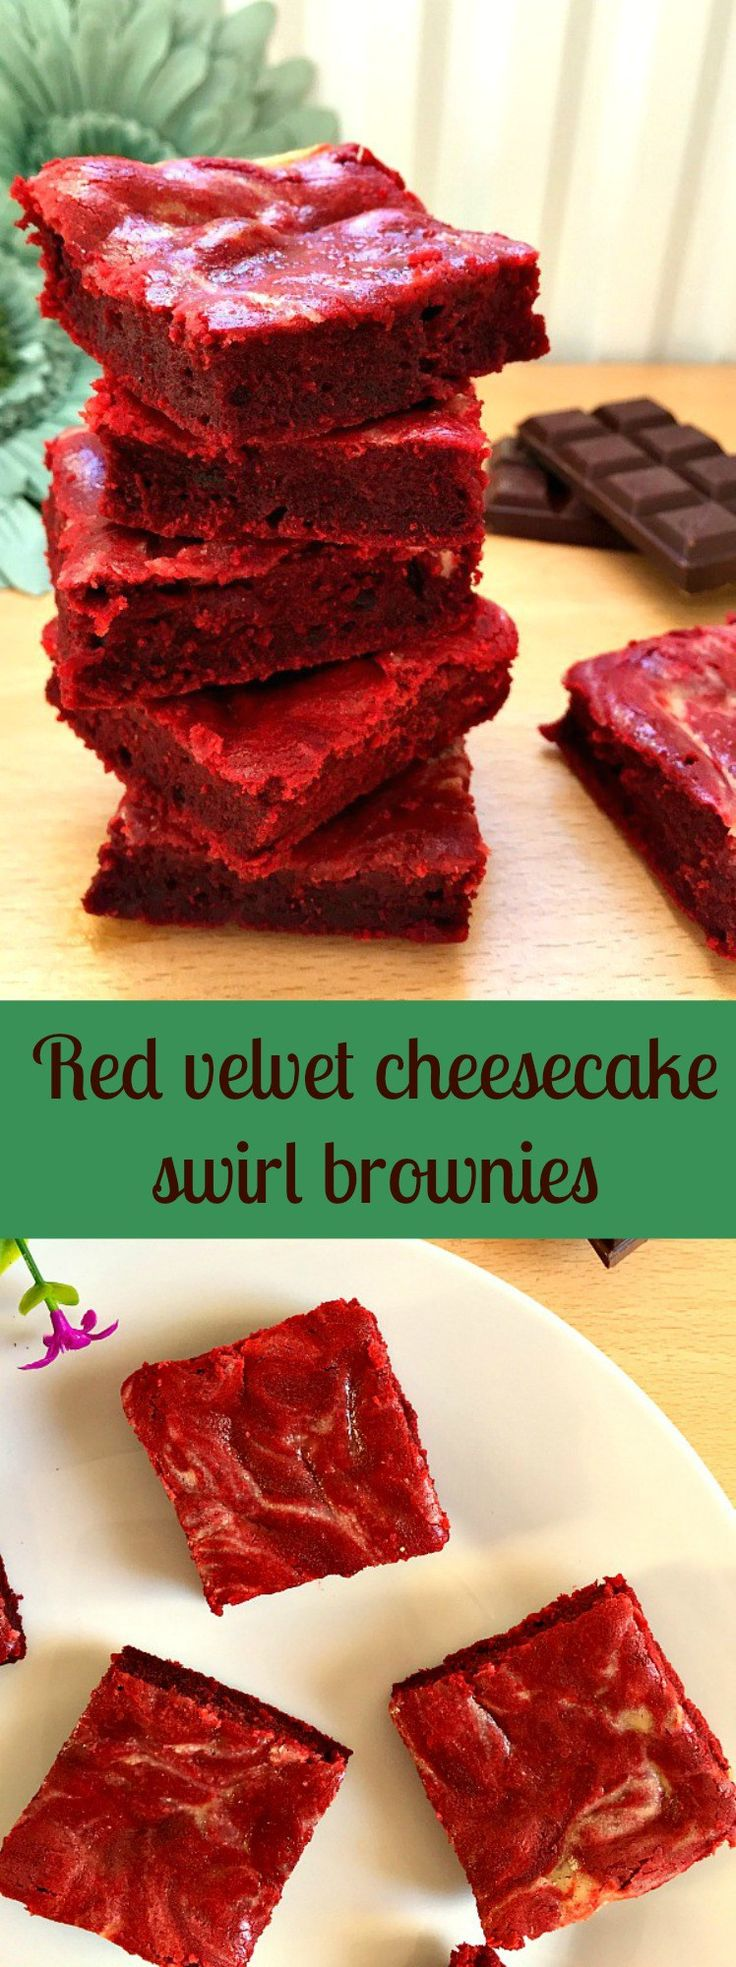 Red velvet cheesecake swirl brownies, rich and decadent, perfect for any party.